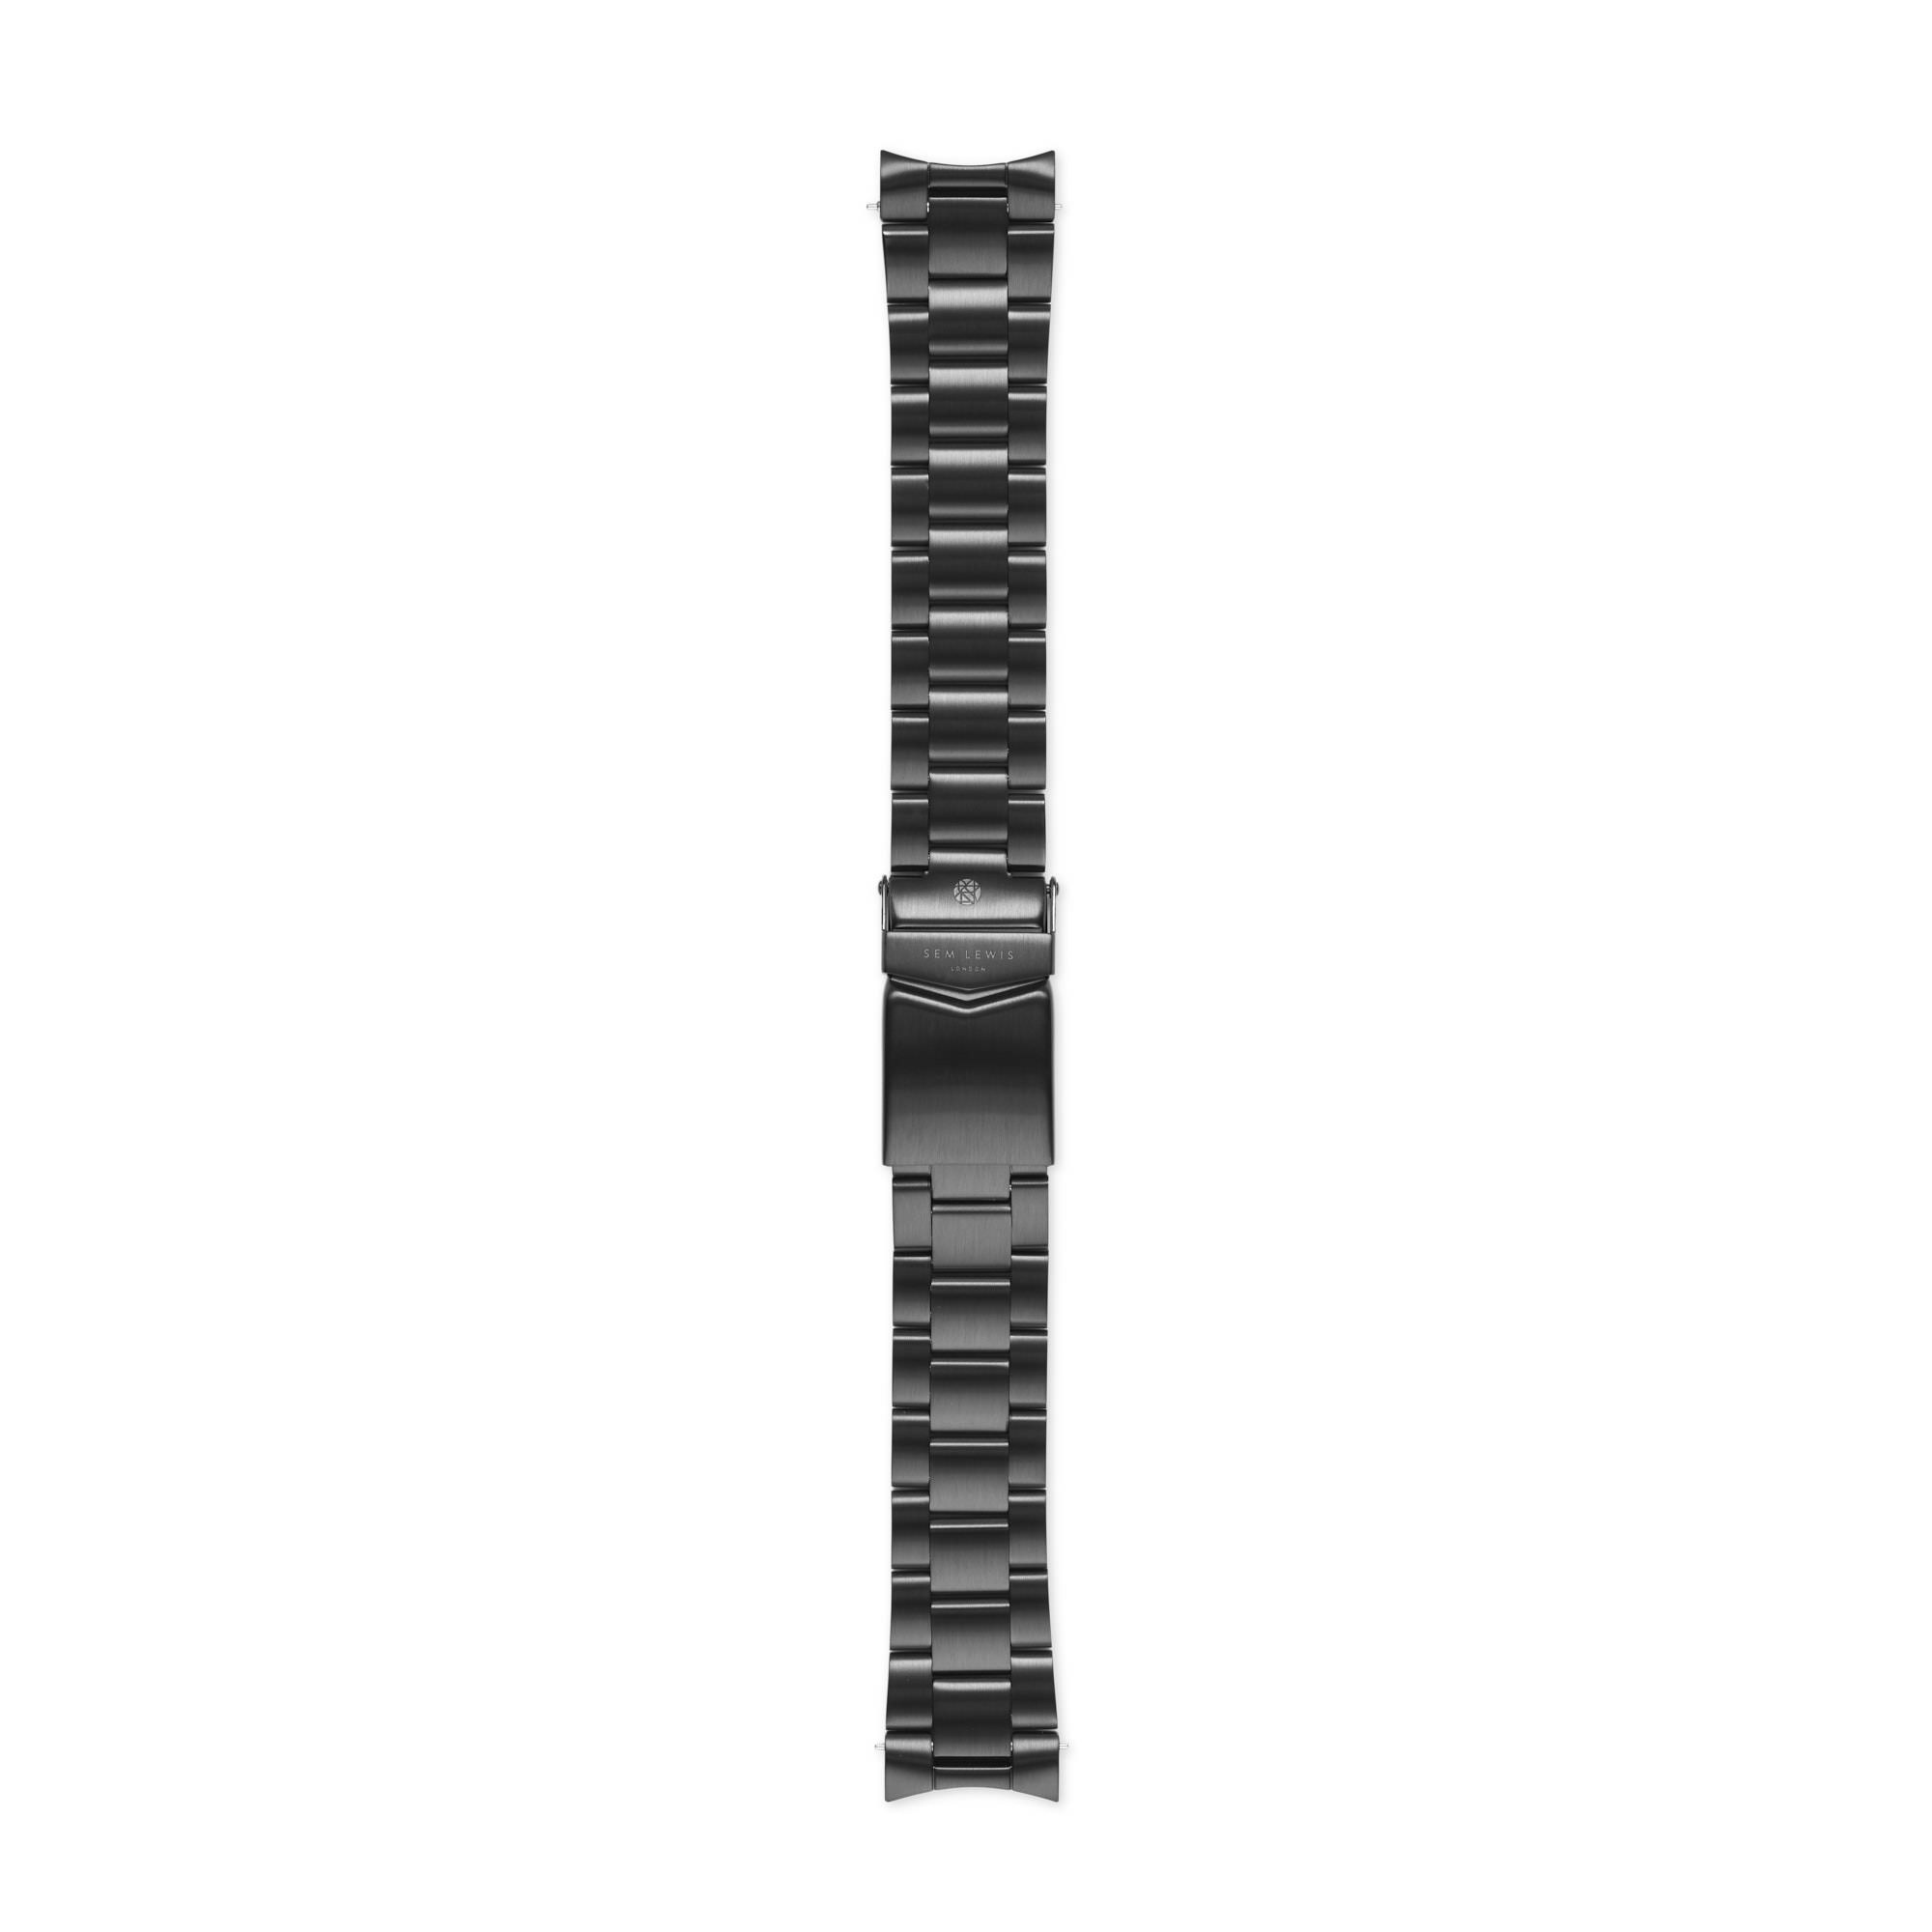 Sem Lewis Lundy Island Diver steel watch strap 20 mm black